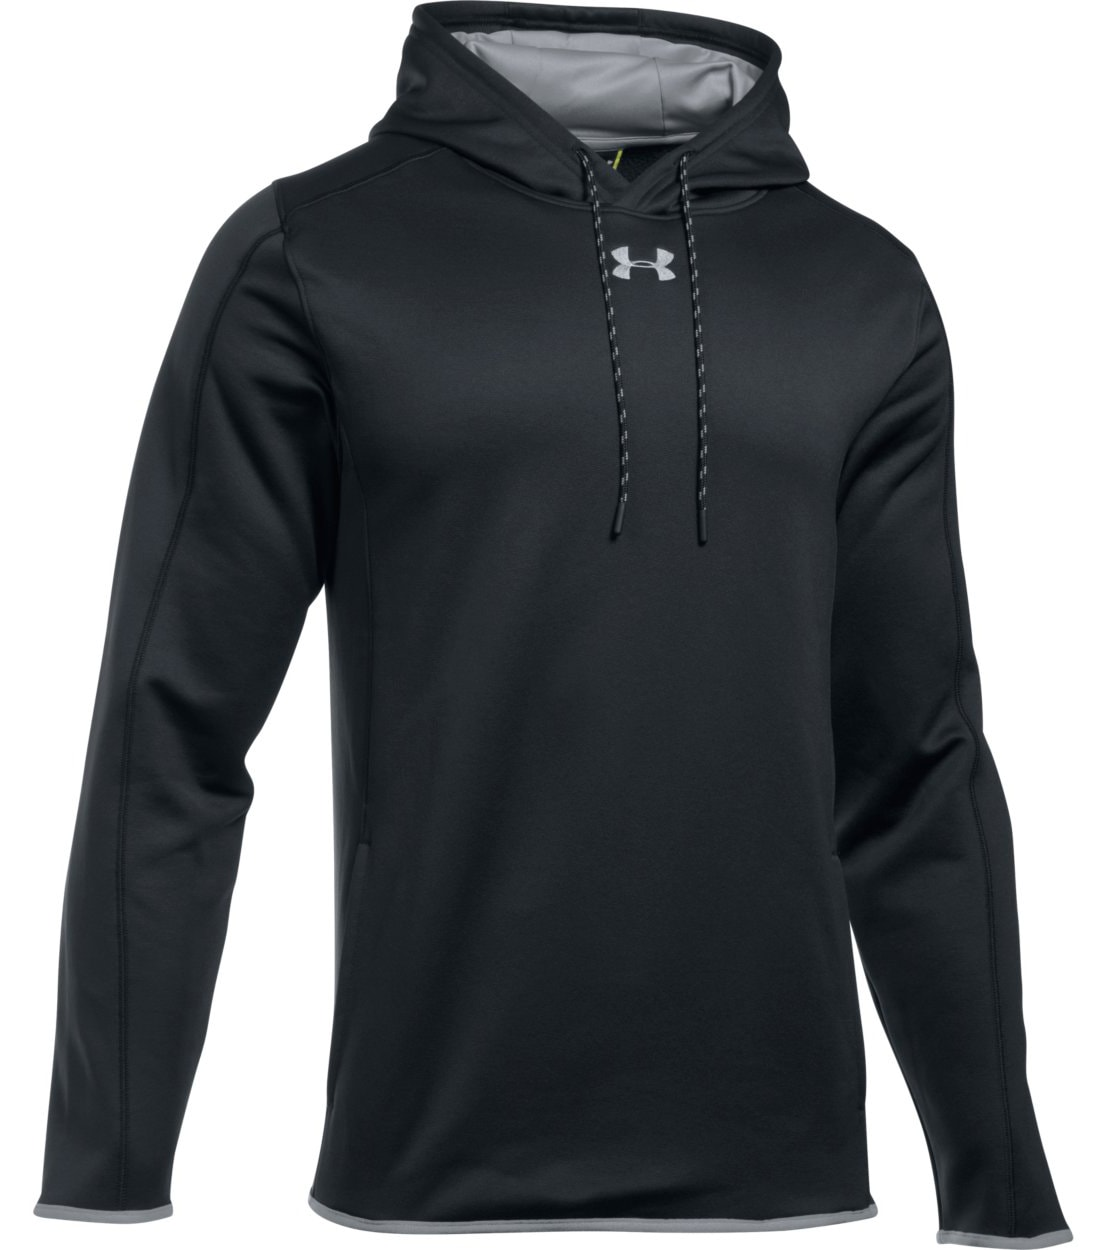 Picture of UNDER ARMOUR Men's Double Threat Fleece Hoodie